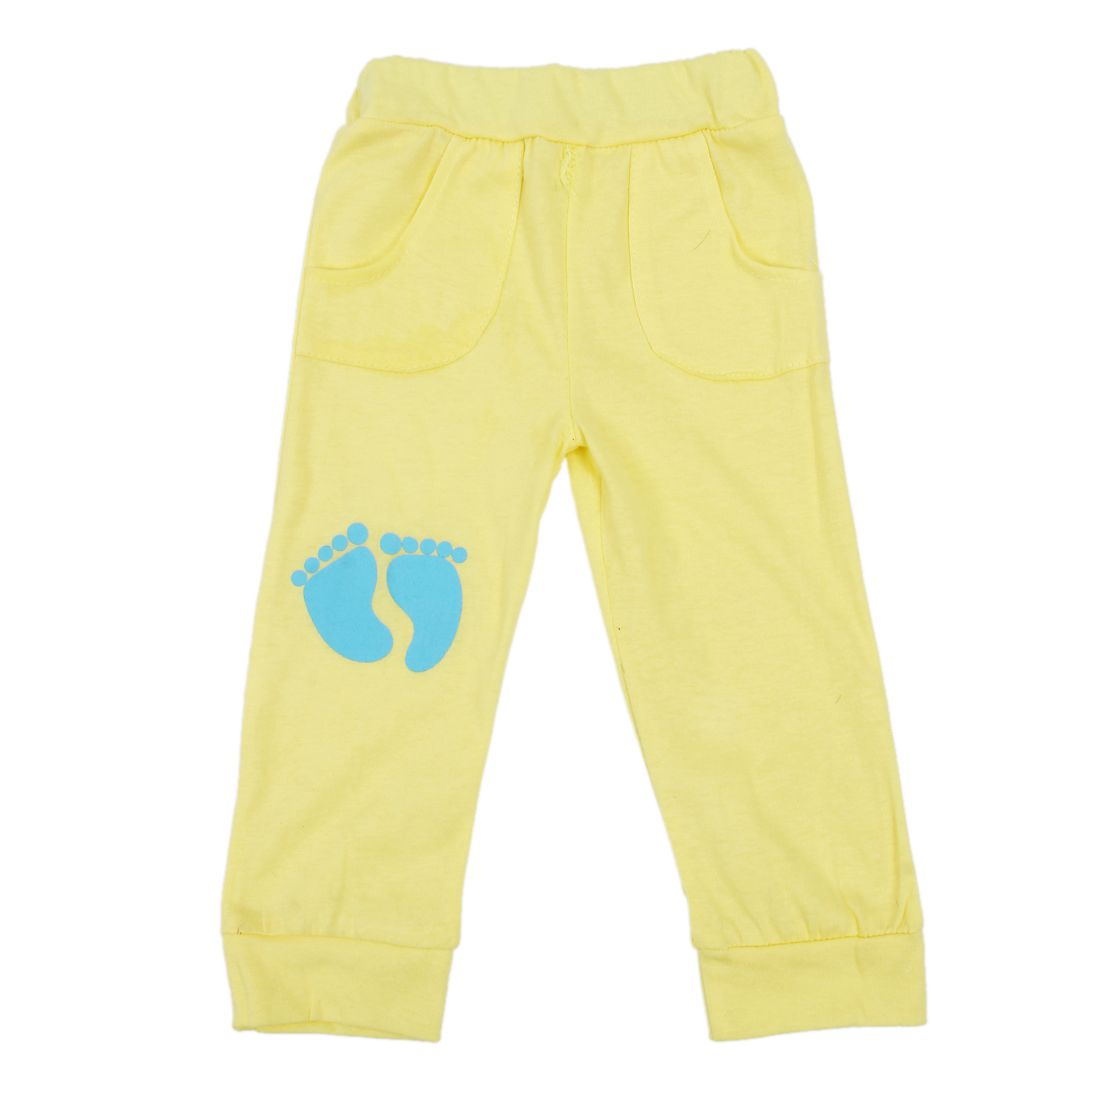 HOT SALE High Quality 100% Cotton baby clothing set,Toddlers children set,baby boys girls 2 pcs Footprints ,Hot sale-Yellow,90